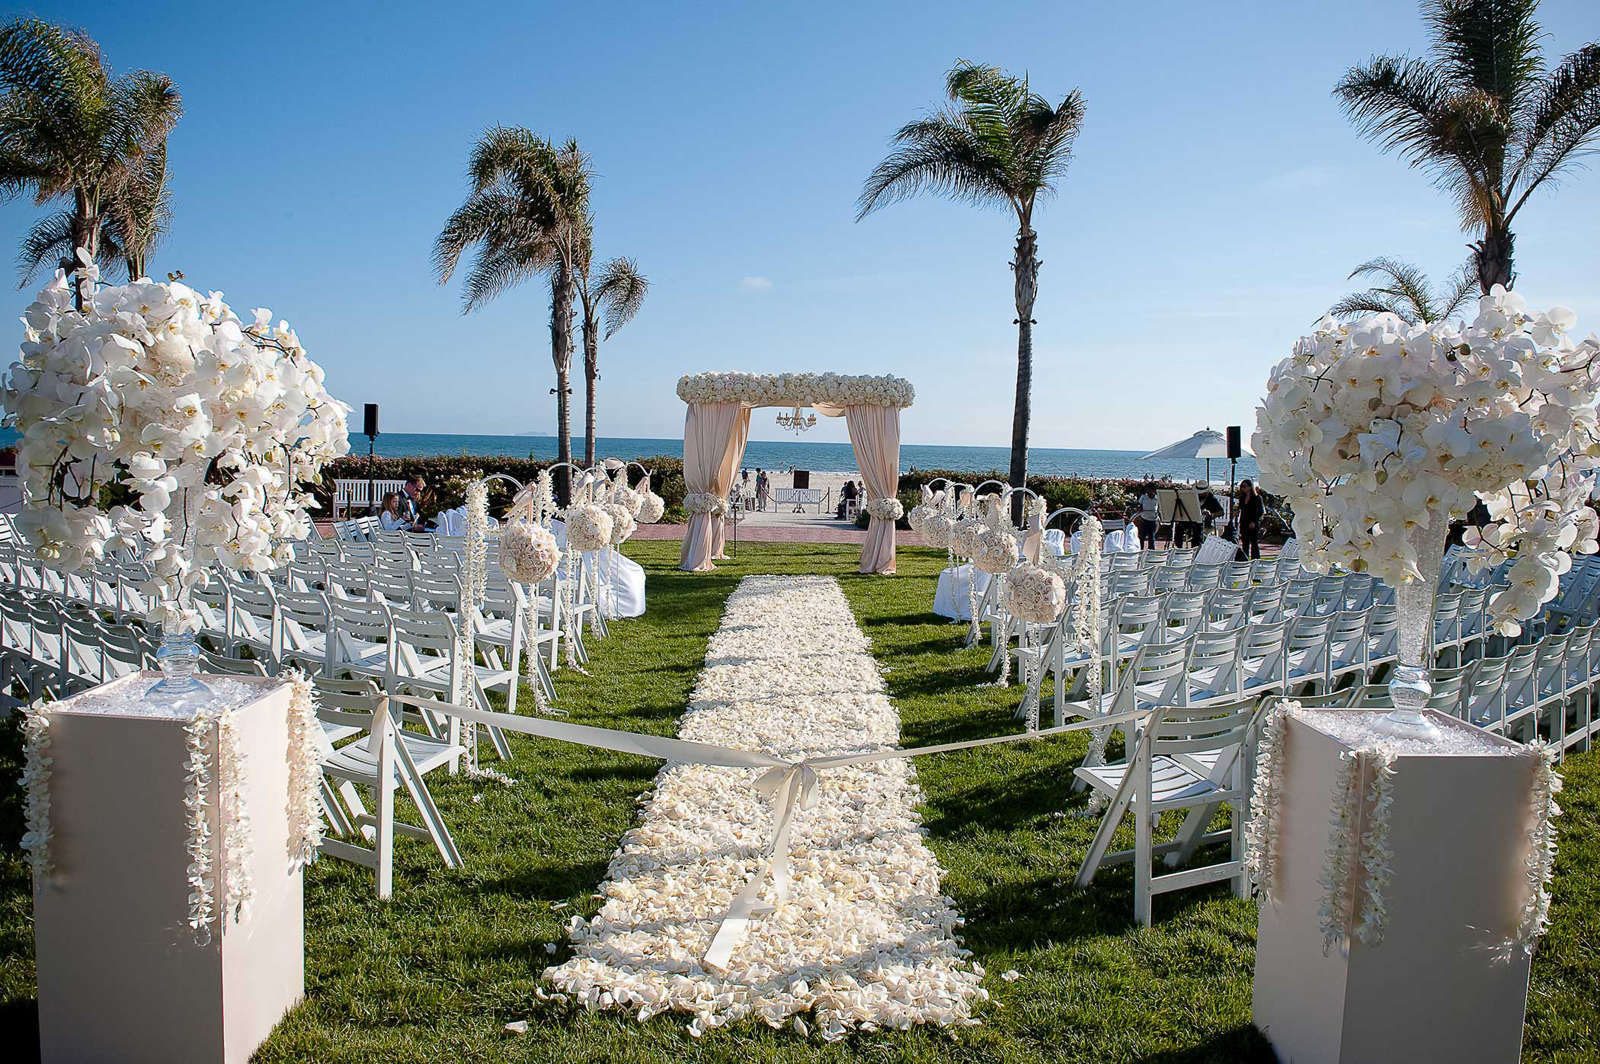 Beach Wedding Ceremony: 35 Outdoor Wedding Decoration Ideas